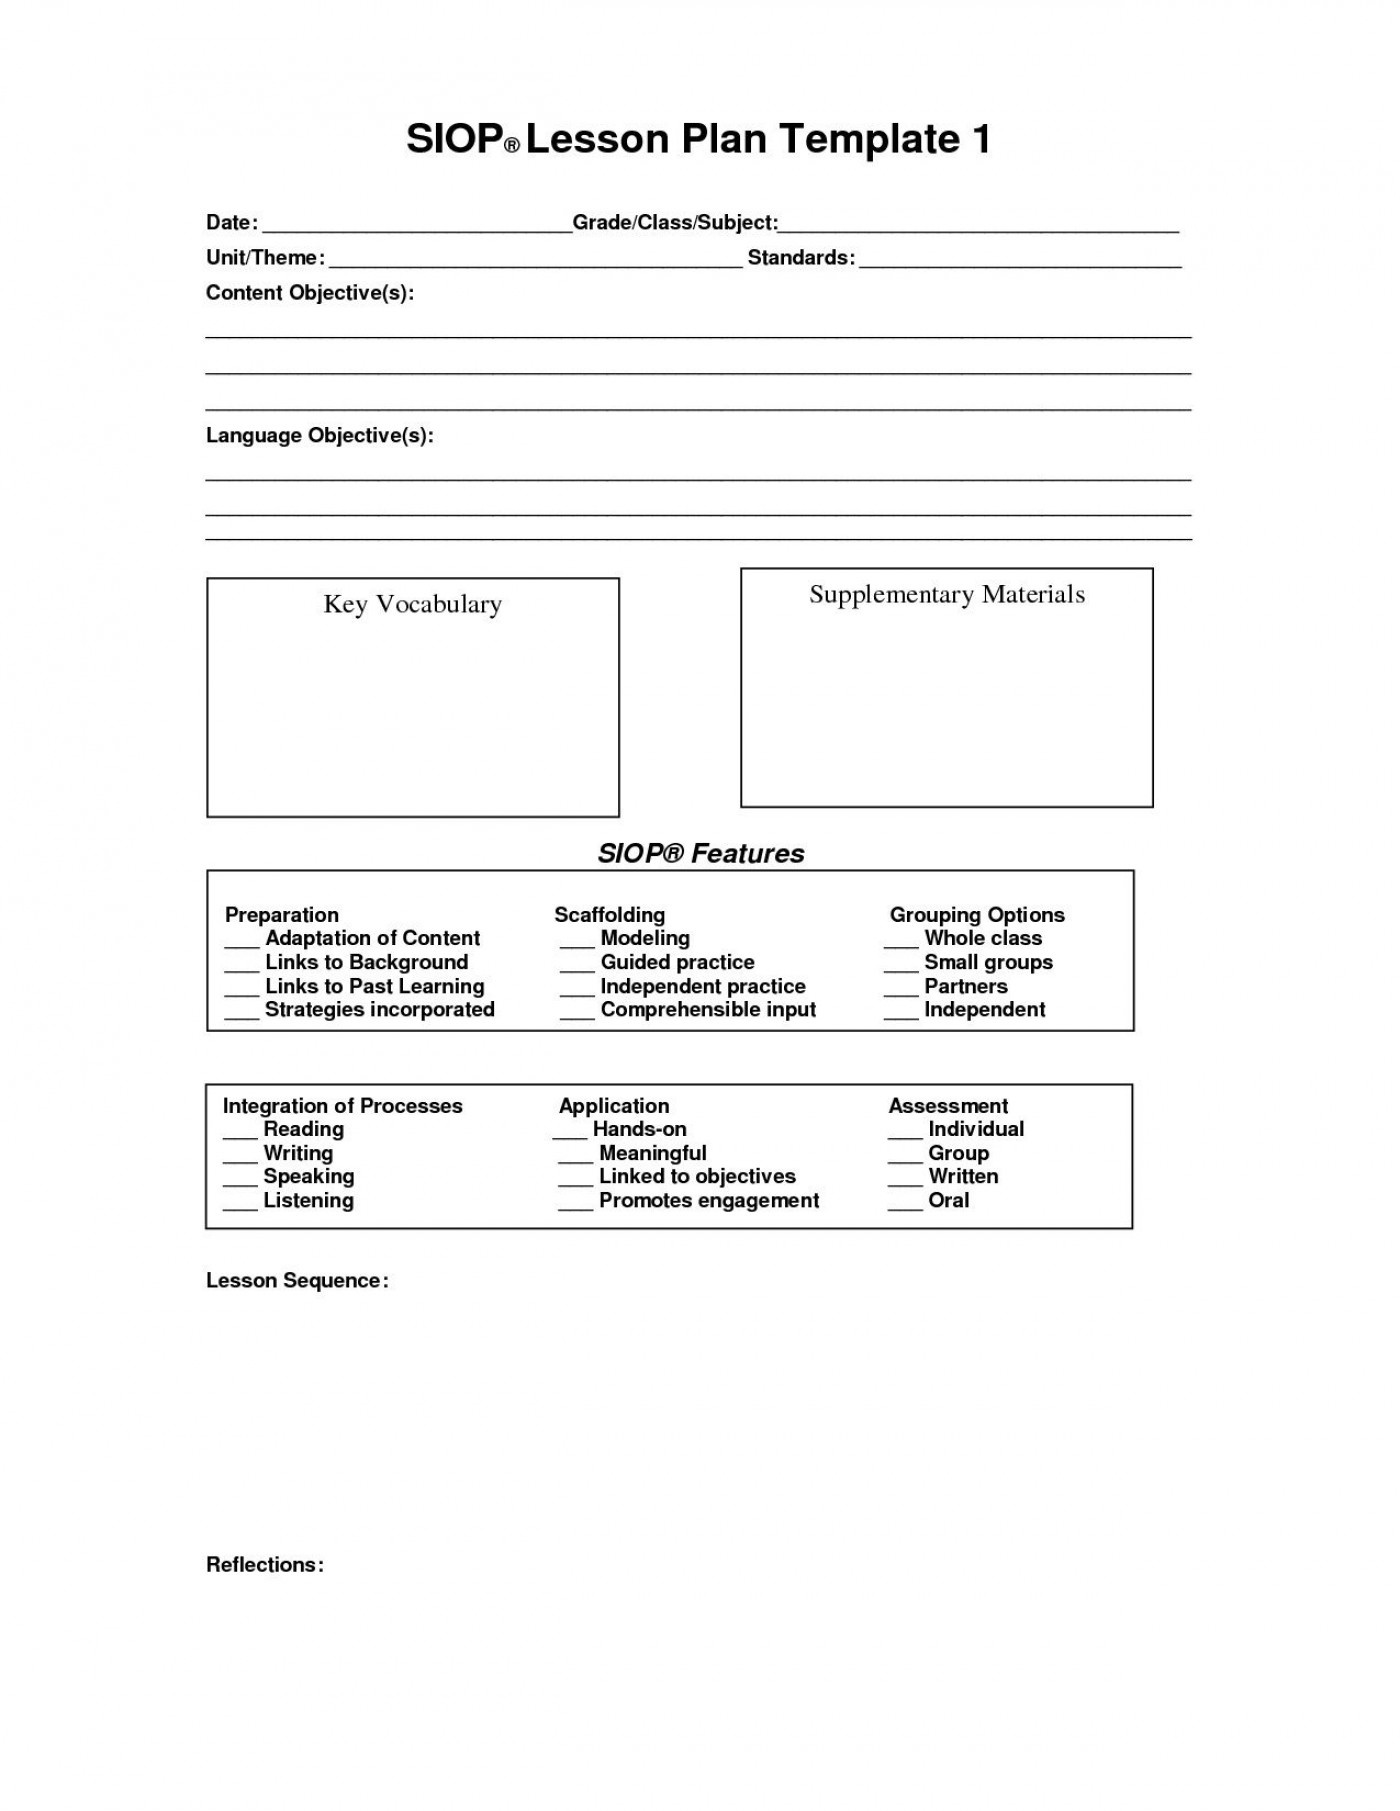 000 Staggering Siop Lesson Plan Template 1 Image  Example First Grade Word Document 1st1400